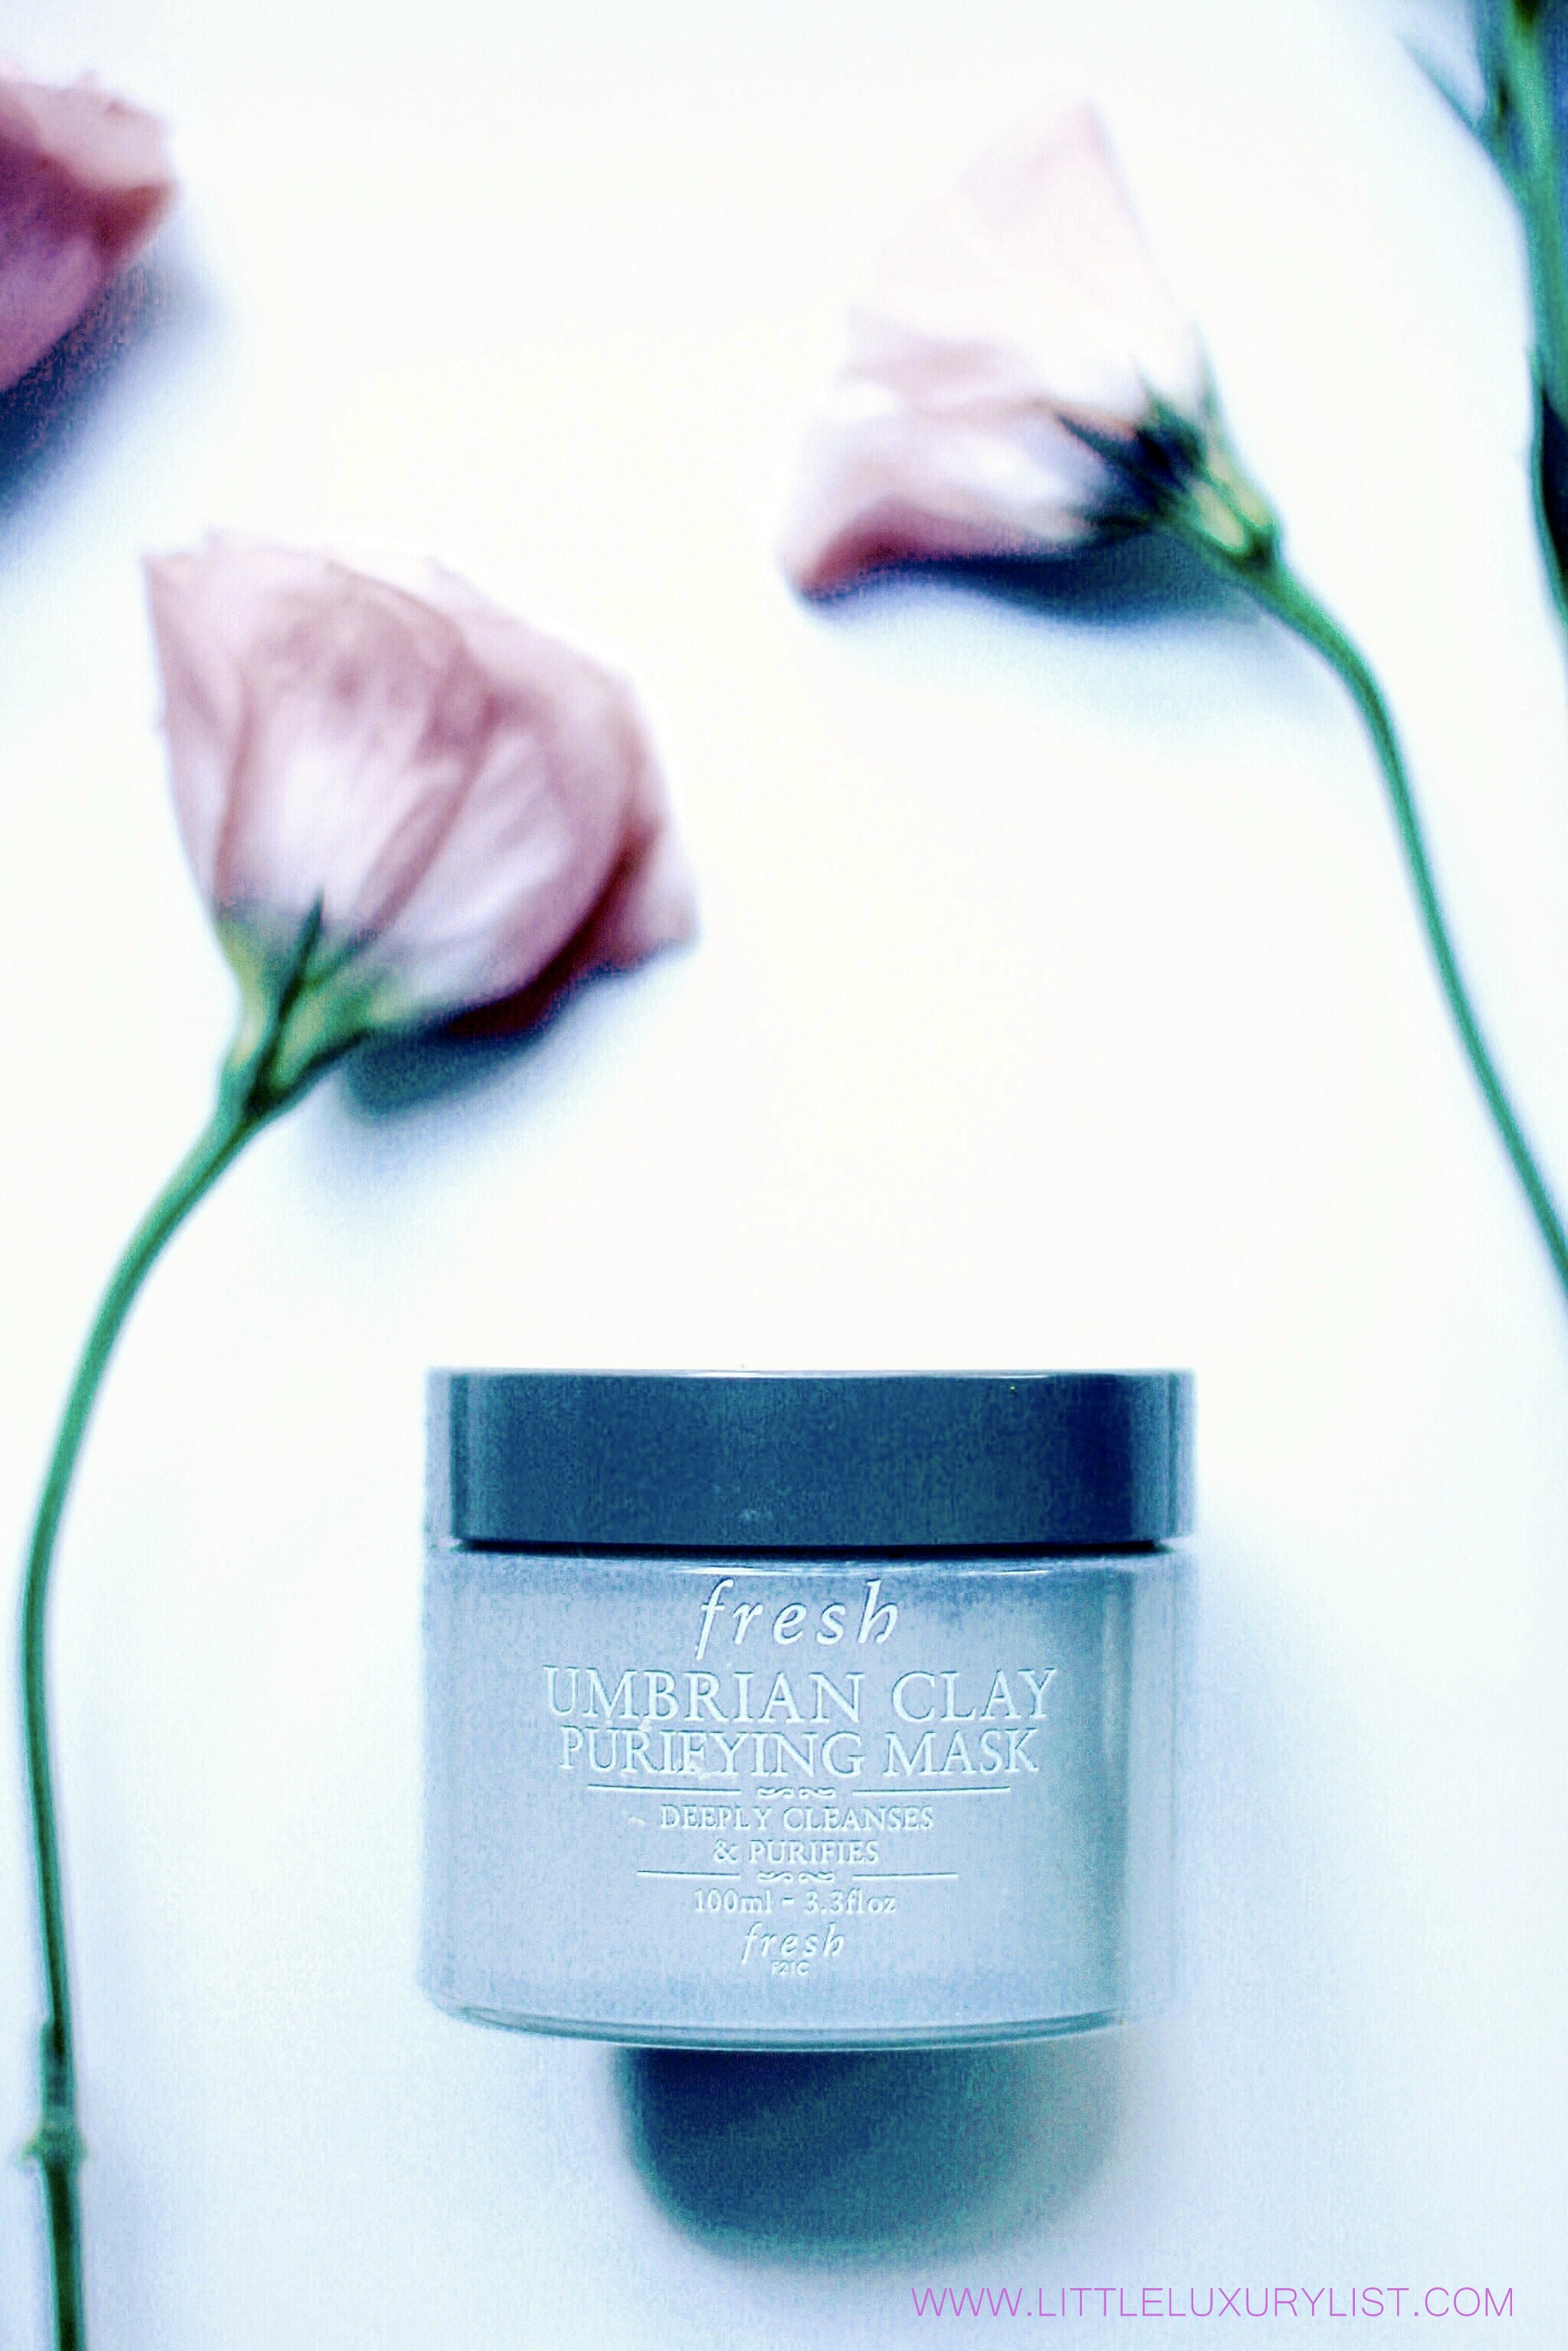 Fresh Umbrian Clay purifying mask with roses